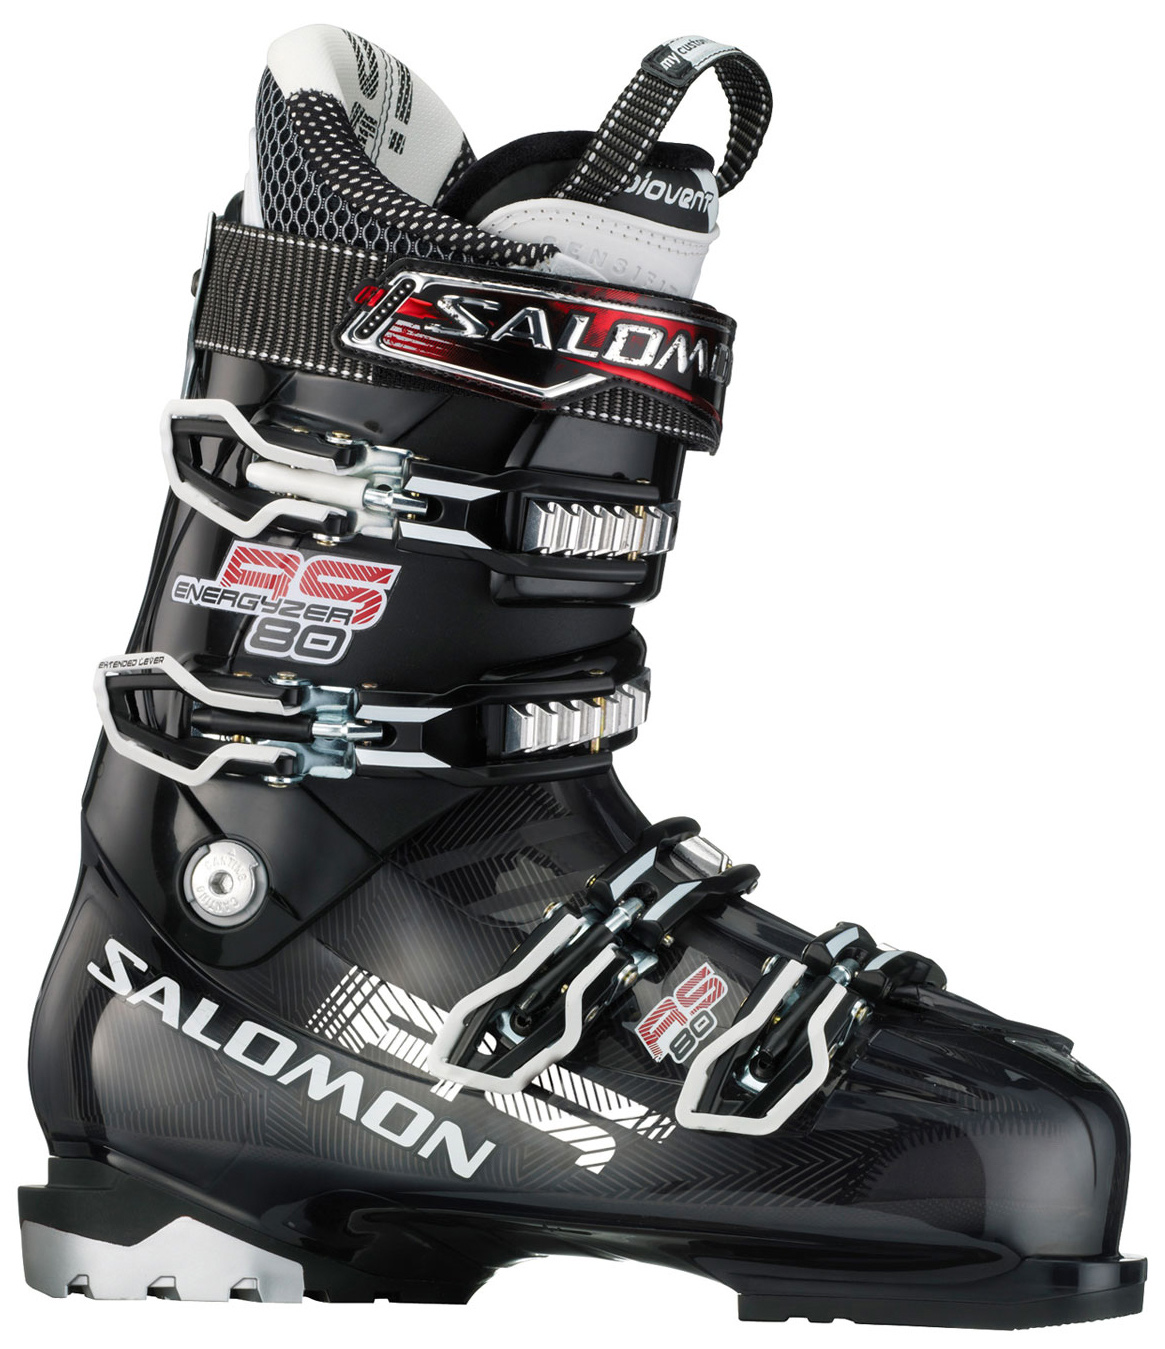 Ski Key Features of the Salomon Rs 80 Ski Boots: Bi Material Pu Lower Shell Bi-Material Pp Upper Cuff My Custom Fit Sport Biovent Leather Liner Single Canting Tool Free Catch Adjustment Heel And Toe Removable Din Pads 4 Micro Titanium Buckles - $209.95